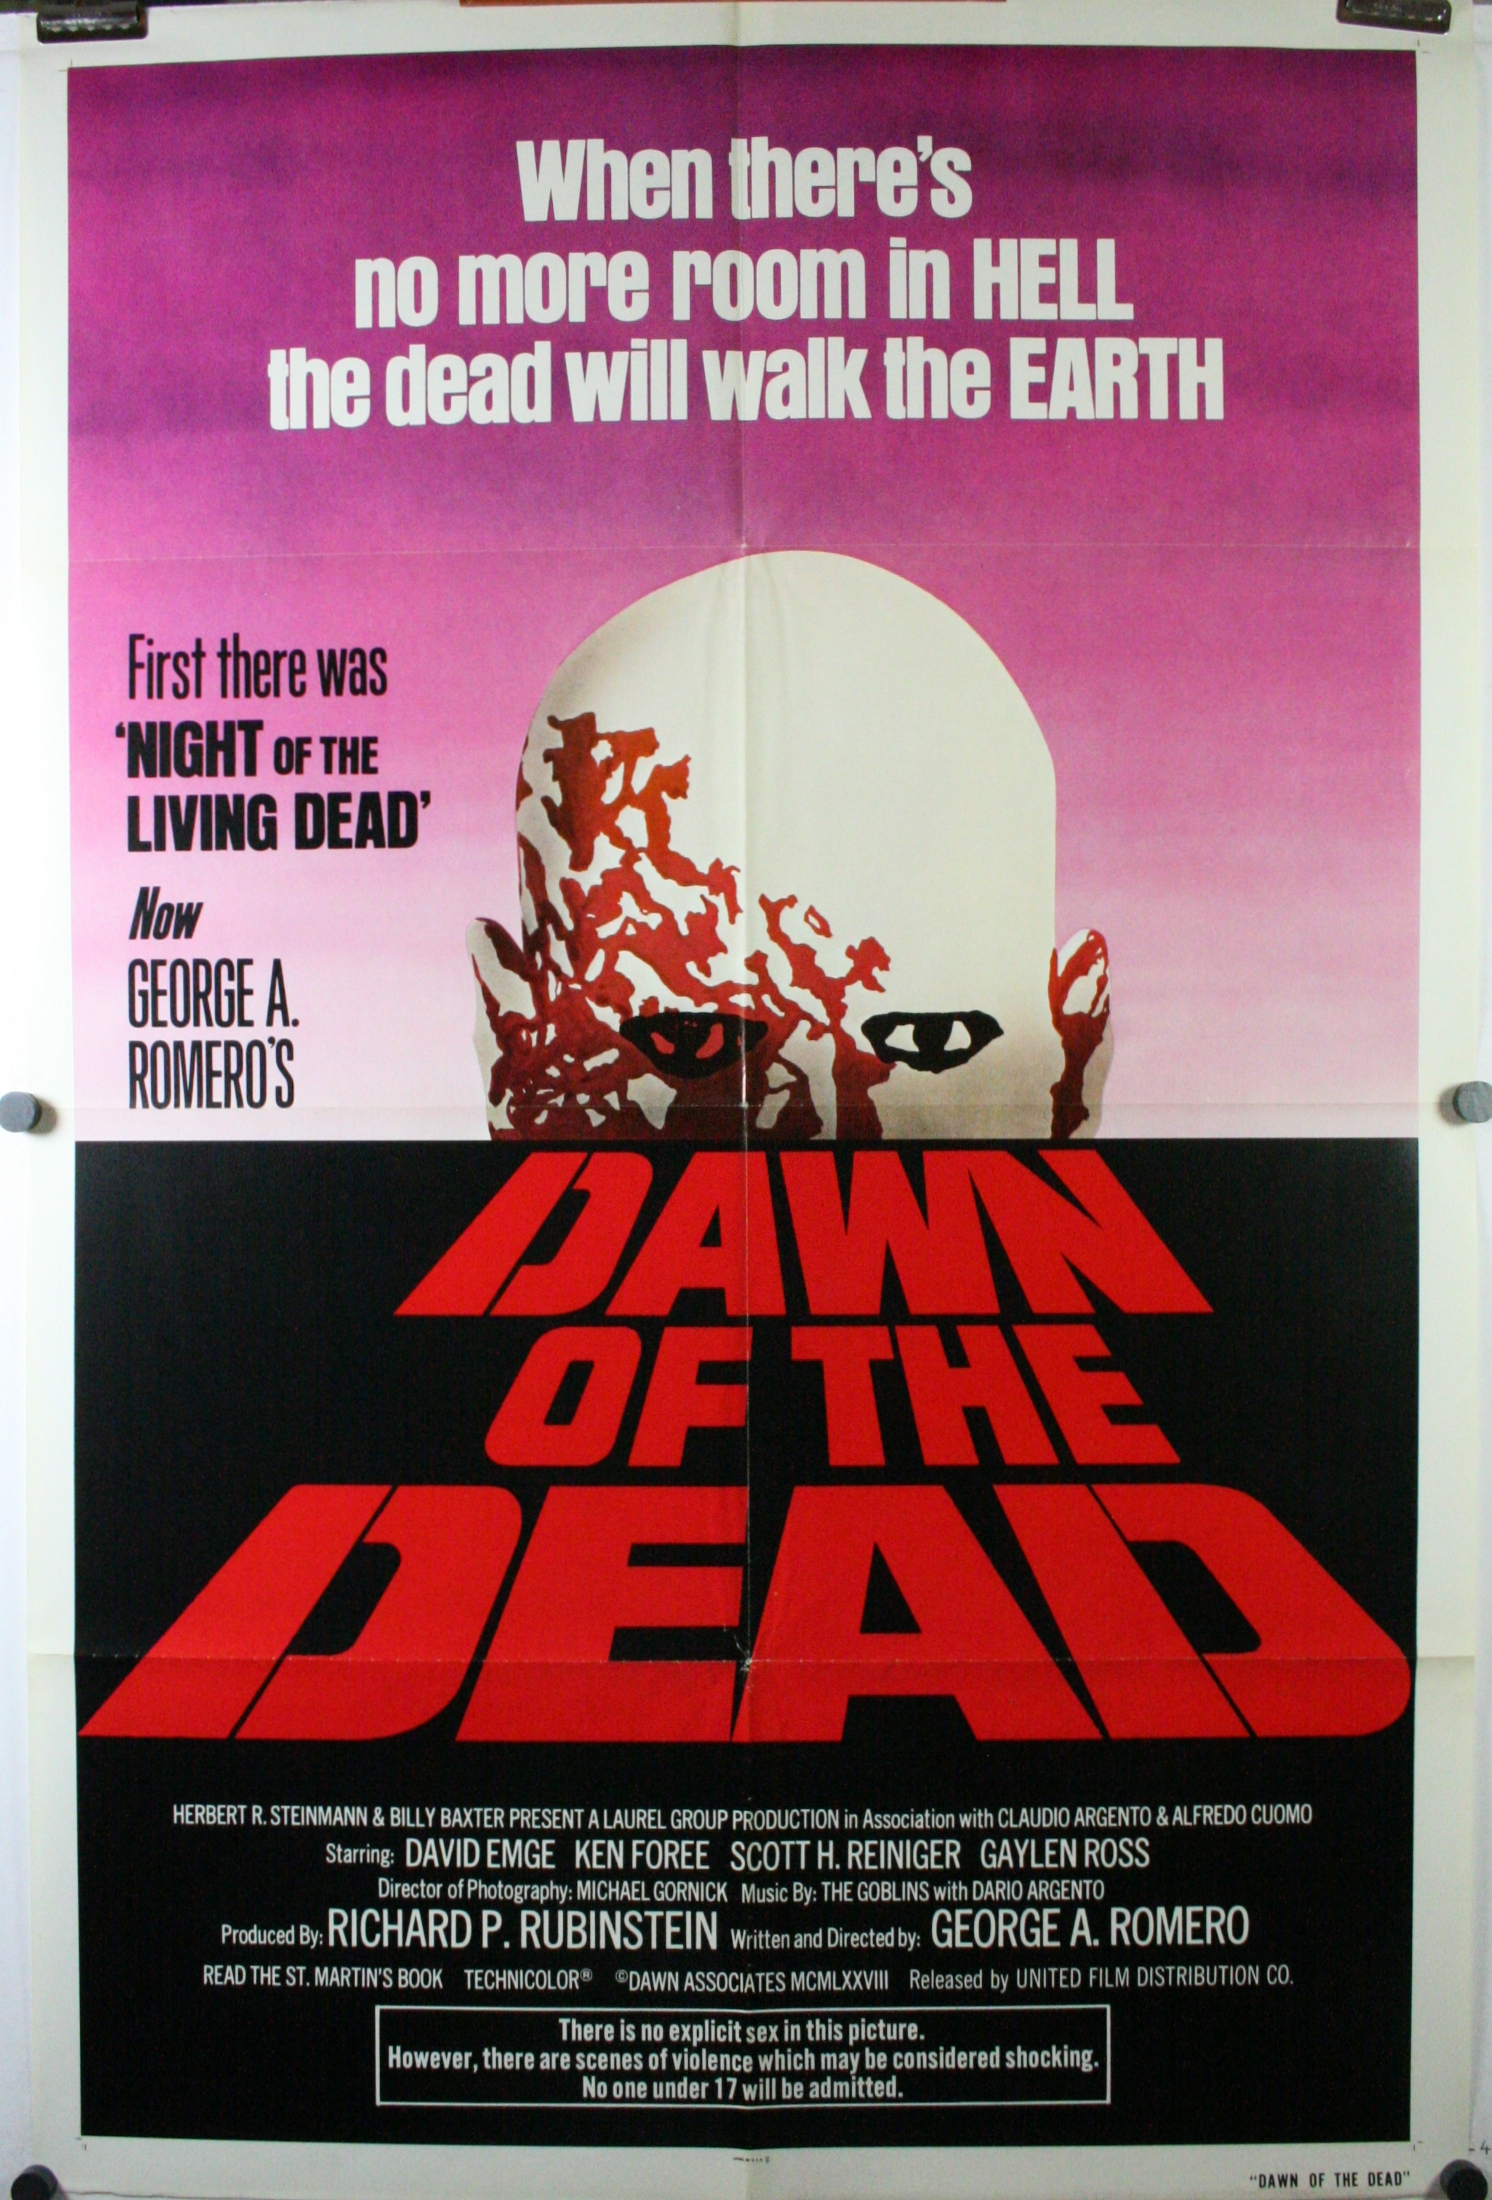 Dawn of the dead 2464